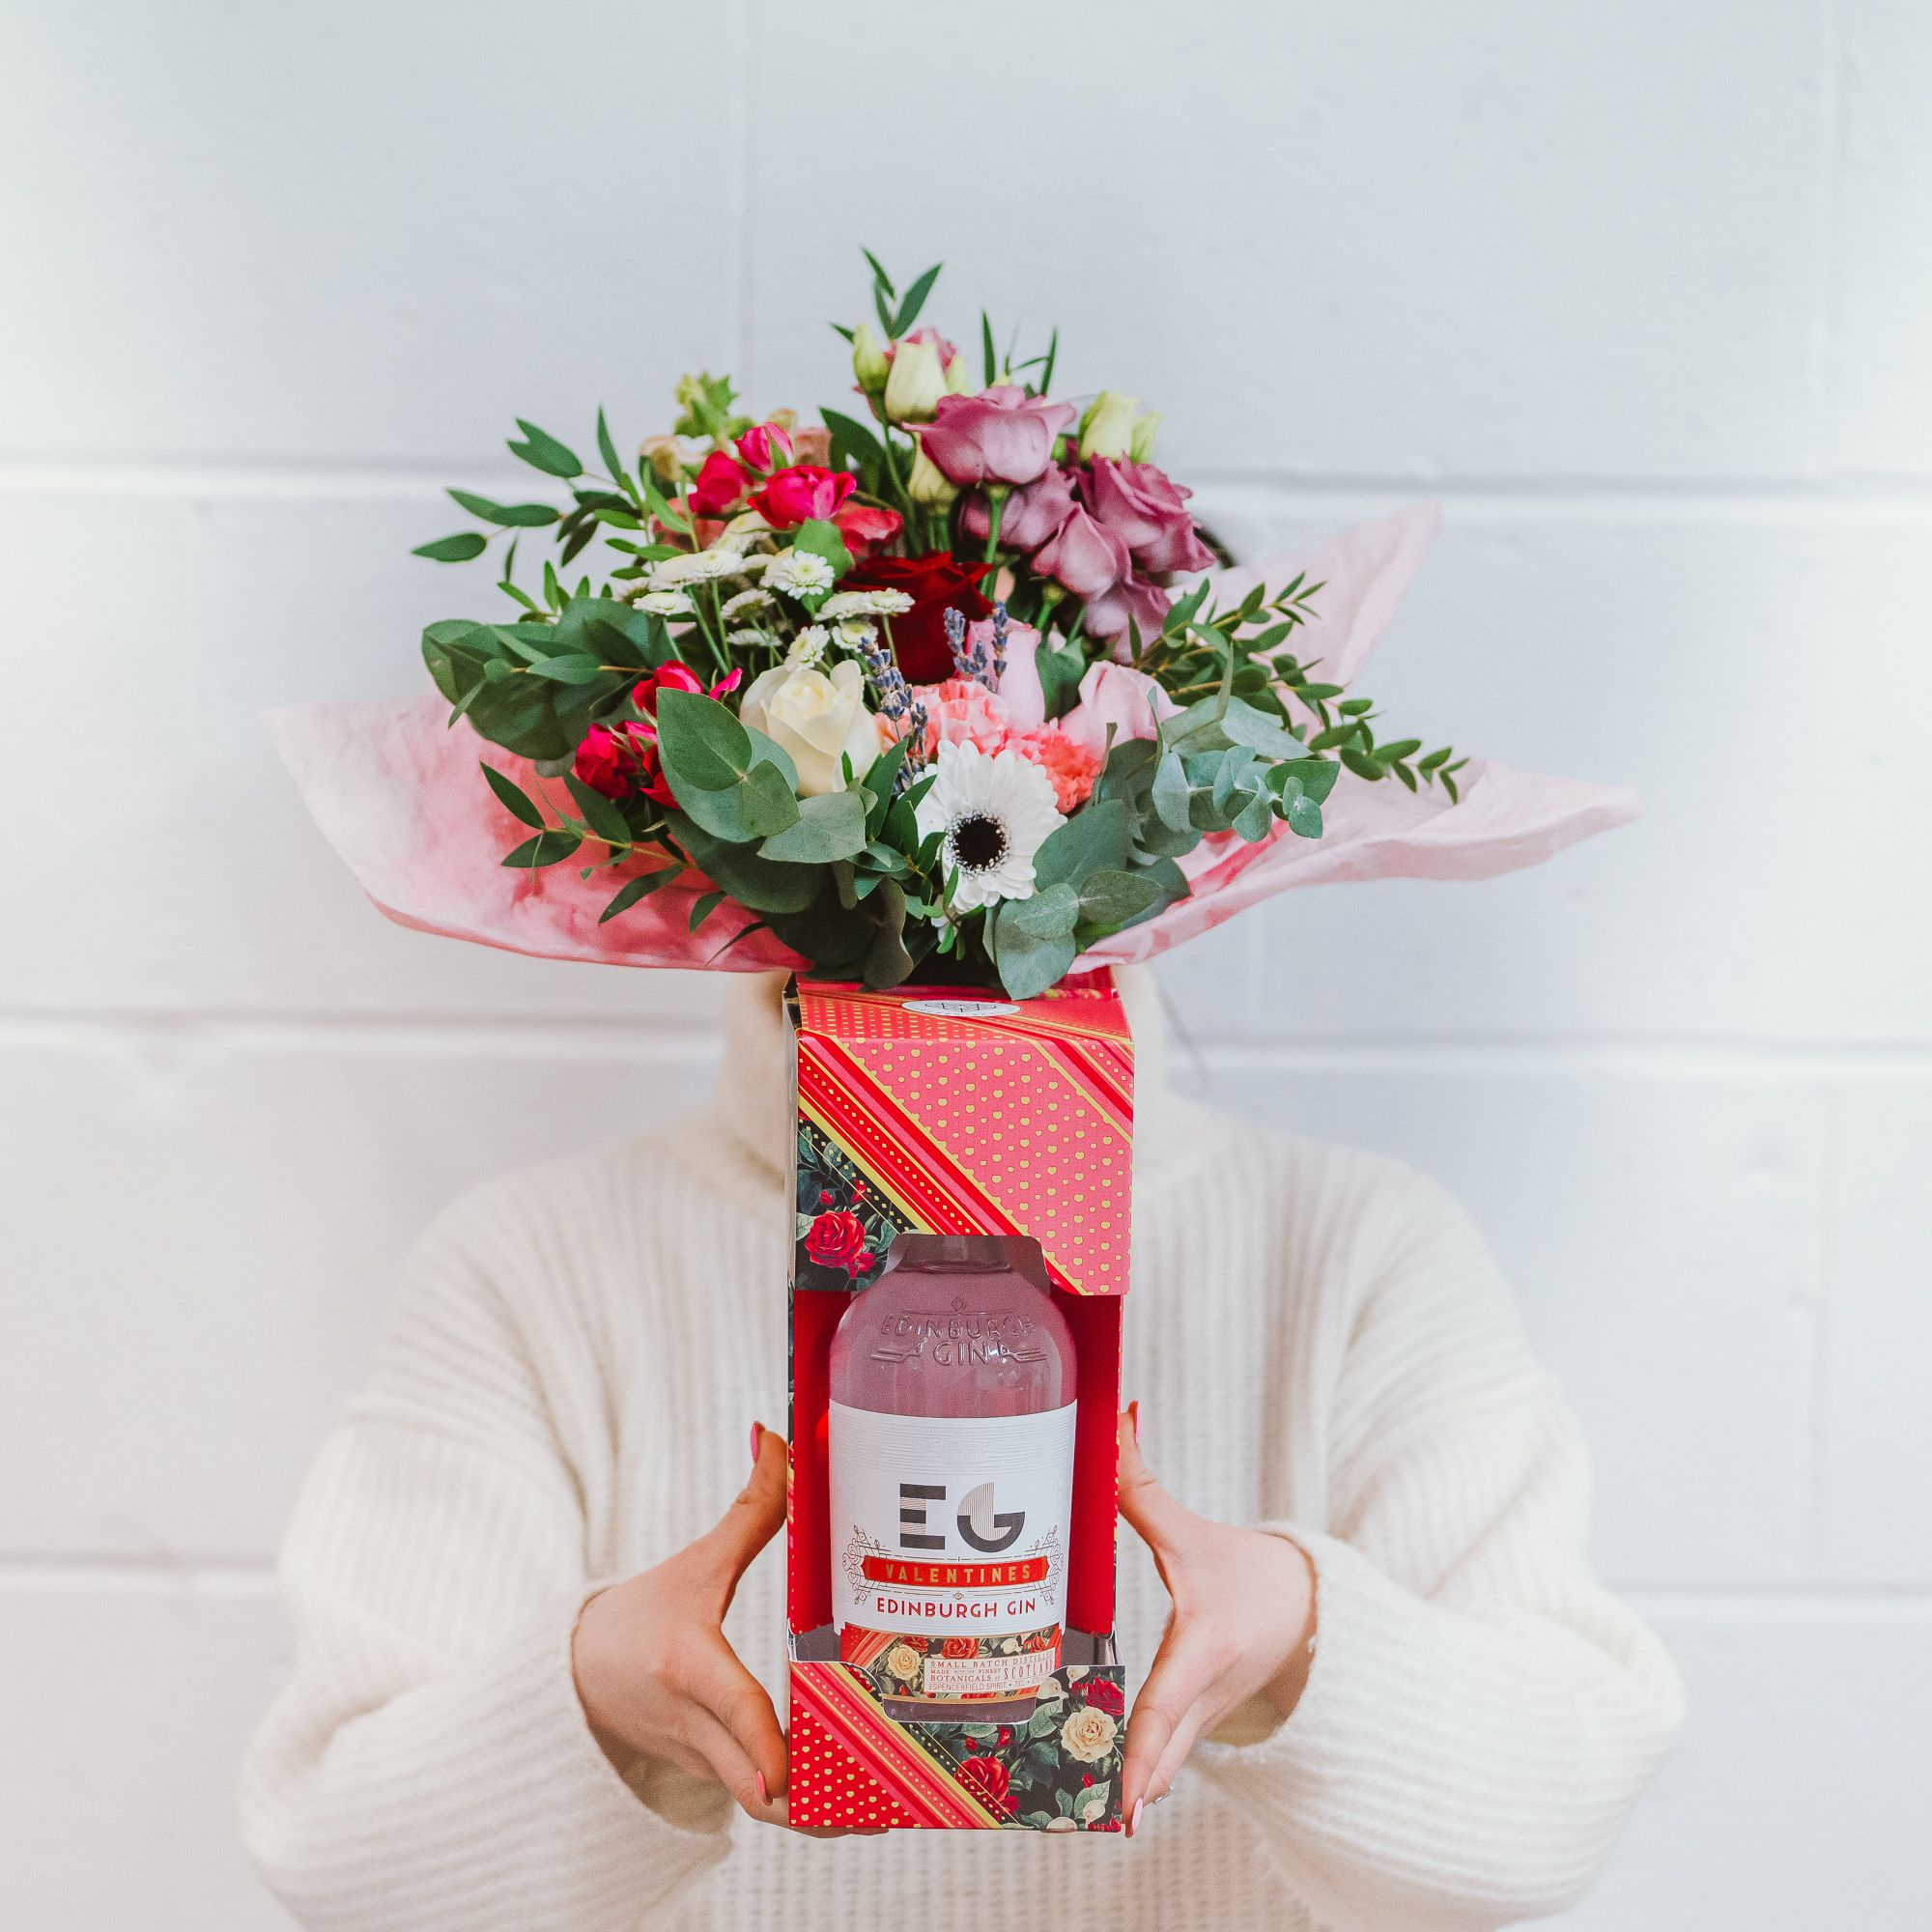 Gin bouquets make for an ideal Valentine's gift | Prima